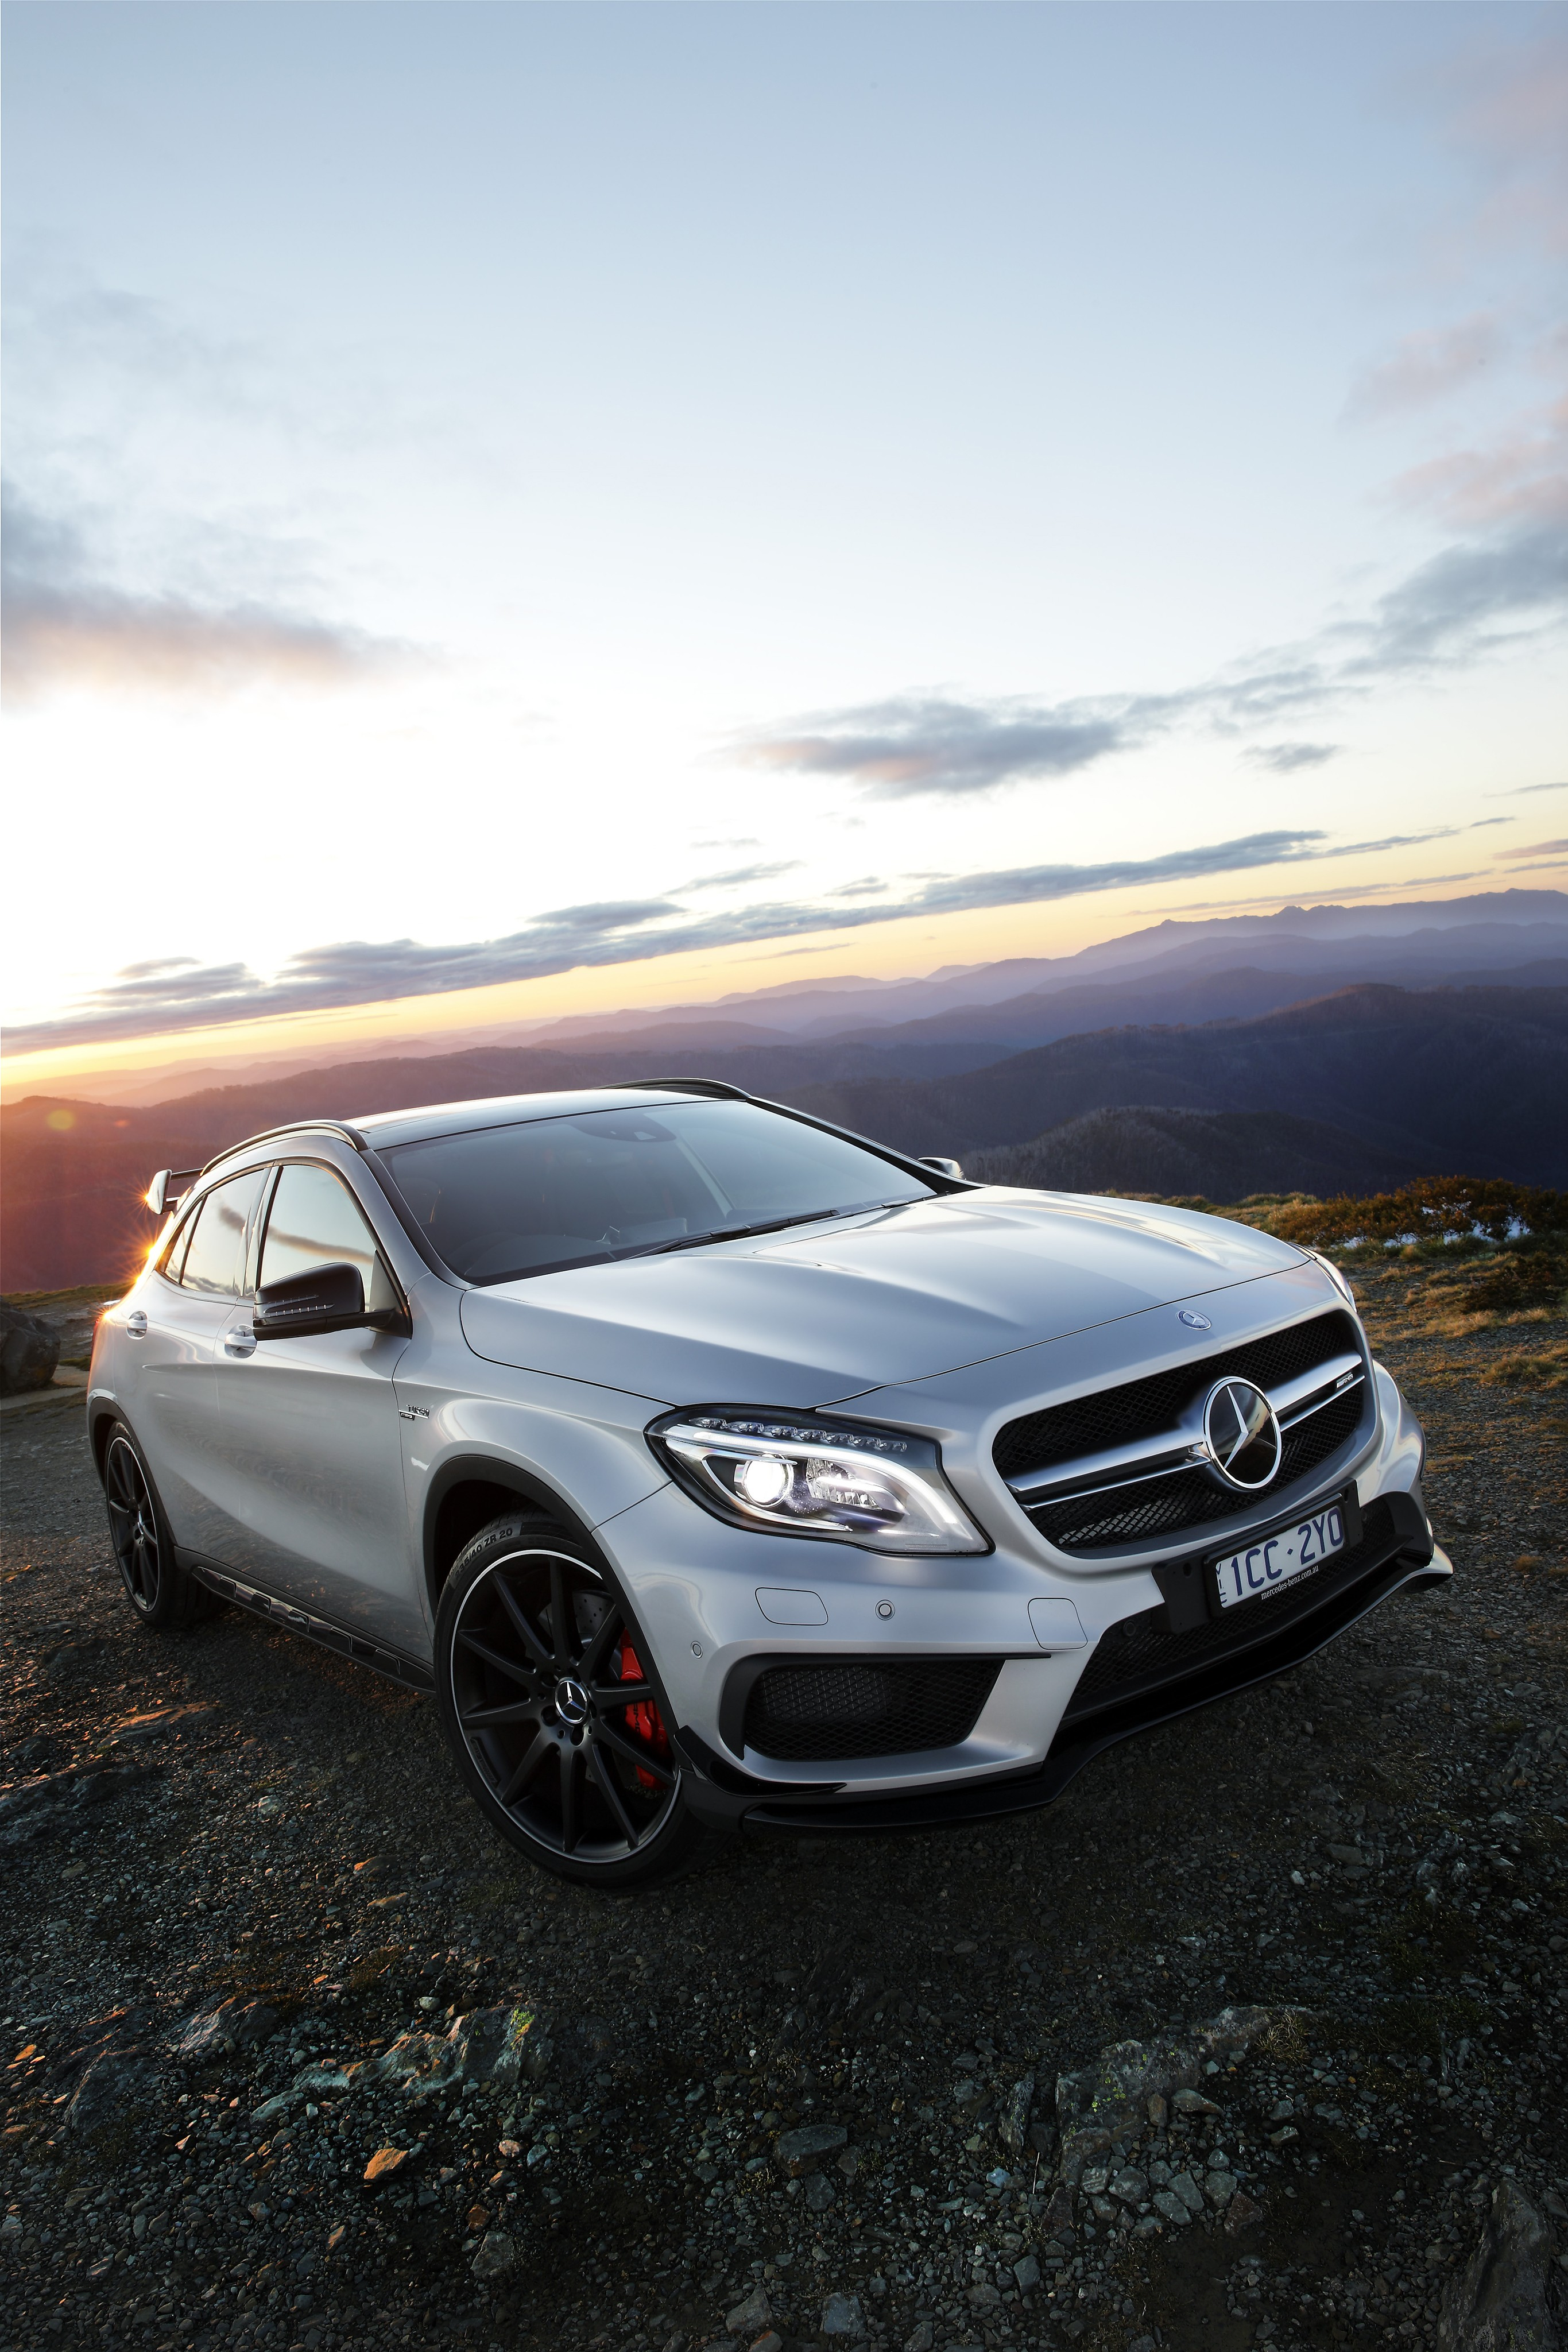 Fastest Car In The World 2015 >> MERCEDES BENZ GLA 45 AMG - 2014, 2015, 2016, 2017 - autoevolution